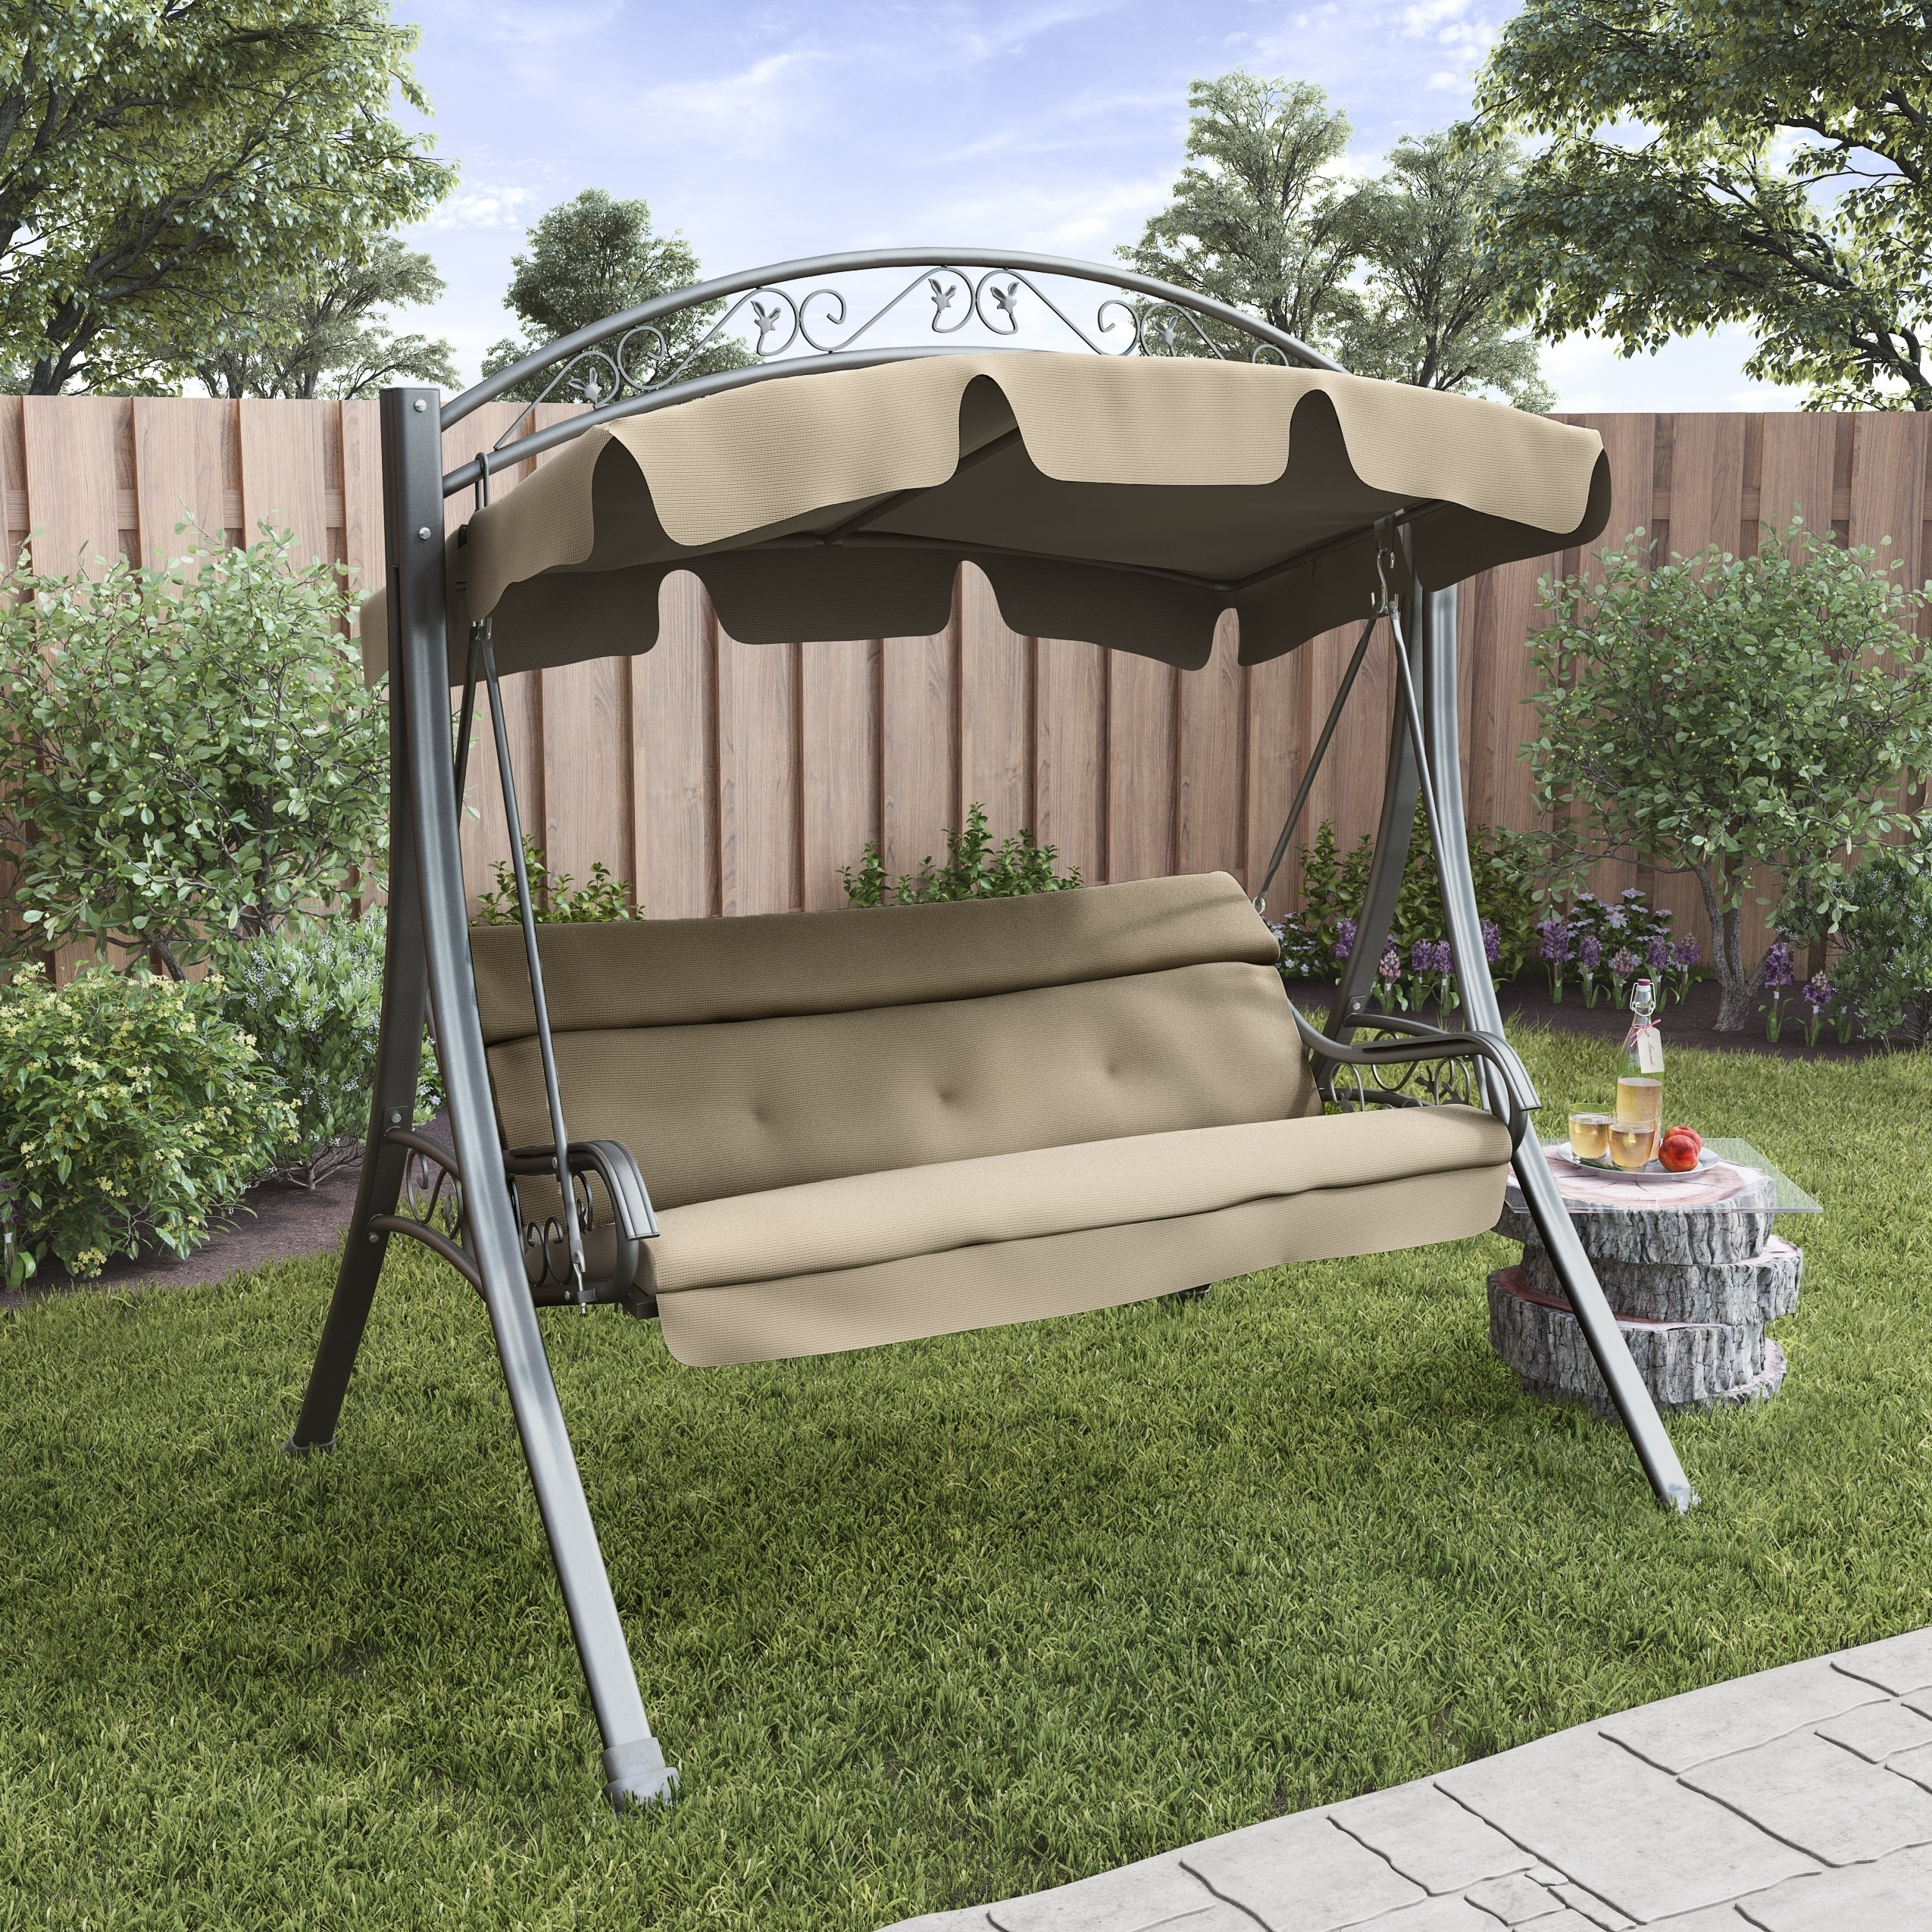 sun com patio with champsbahrain seater l two bed jarder luxury swing canopy garden seat lounger outdoor